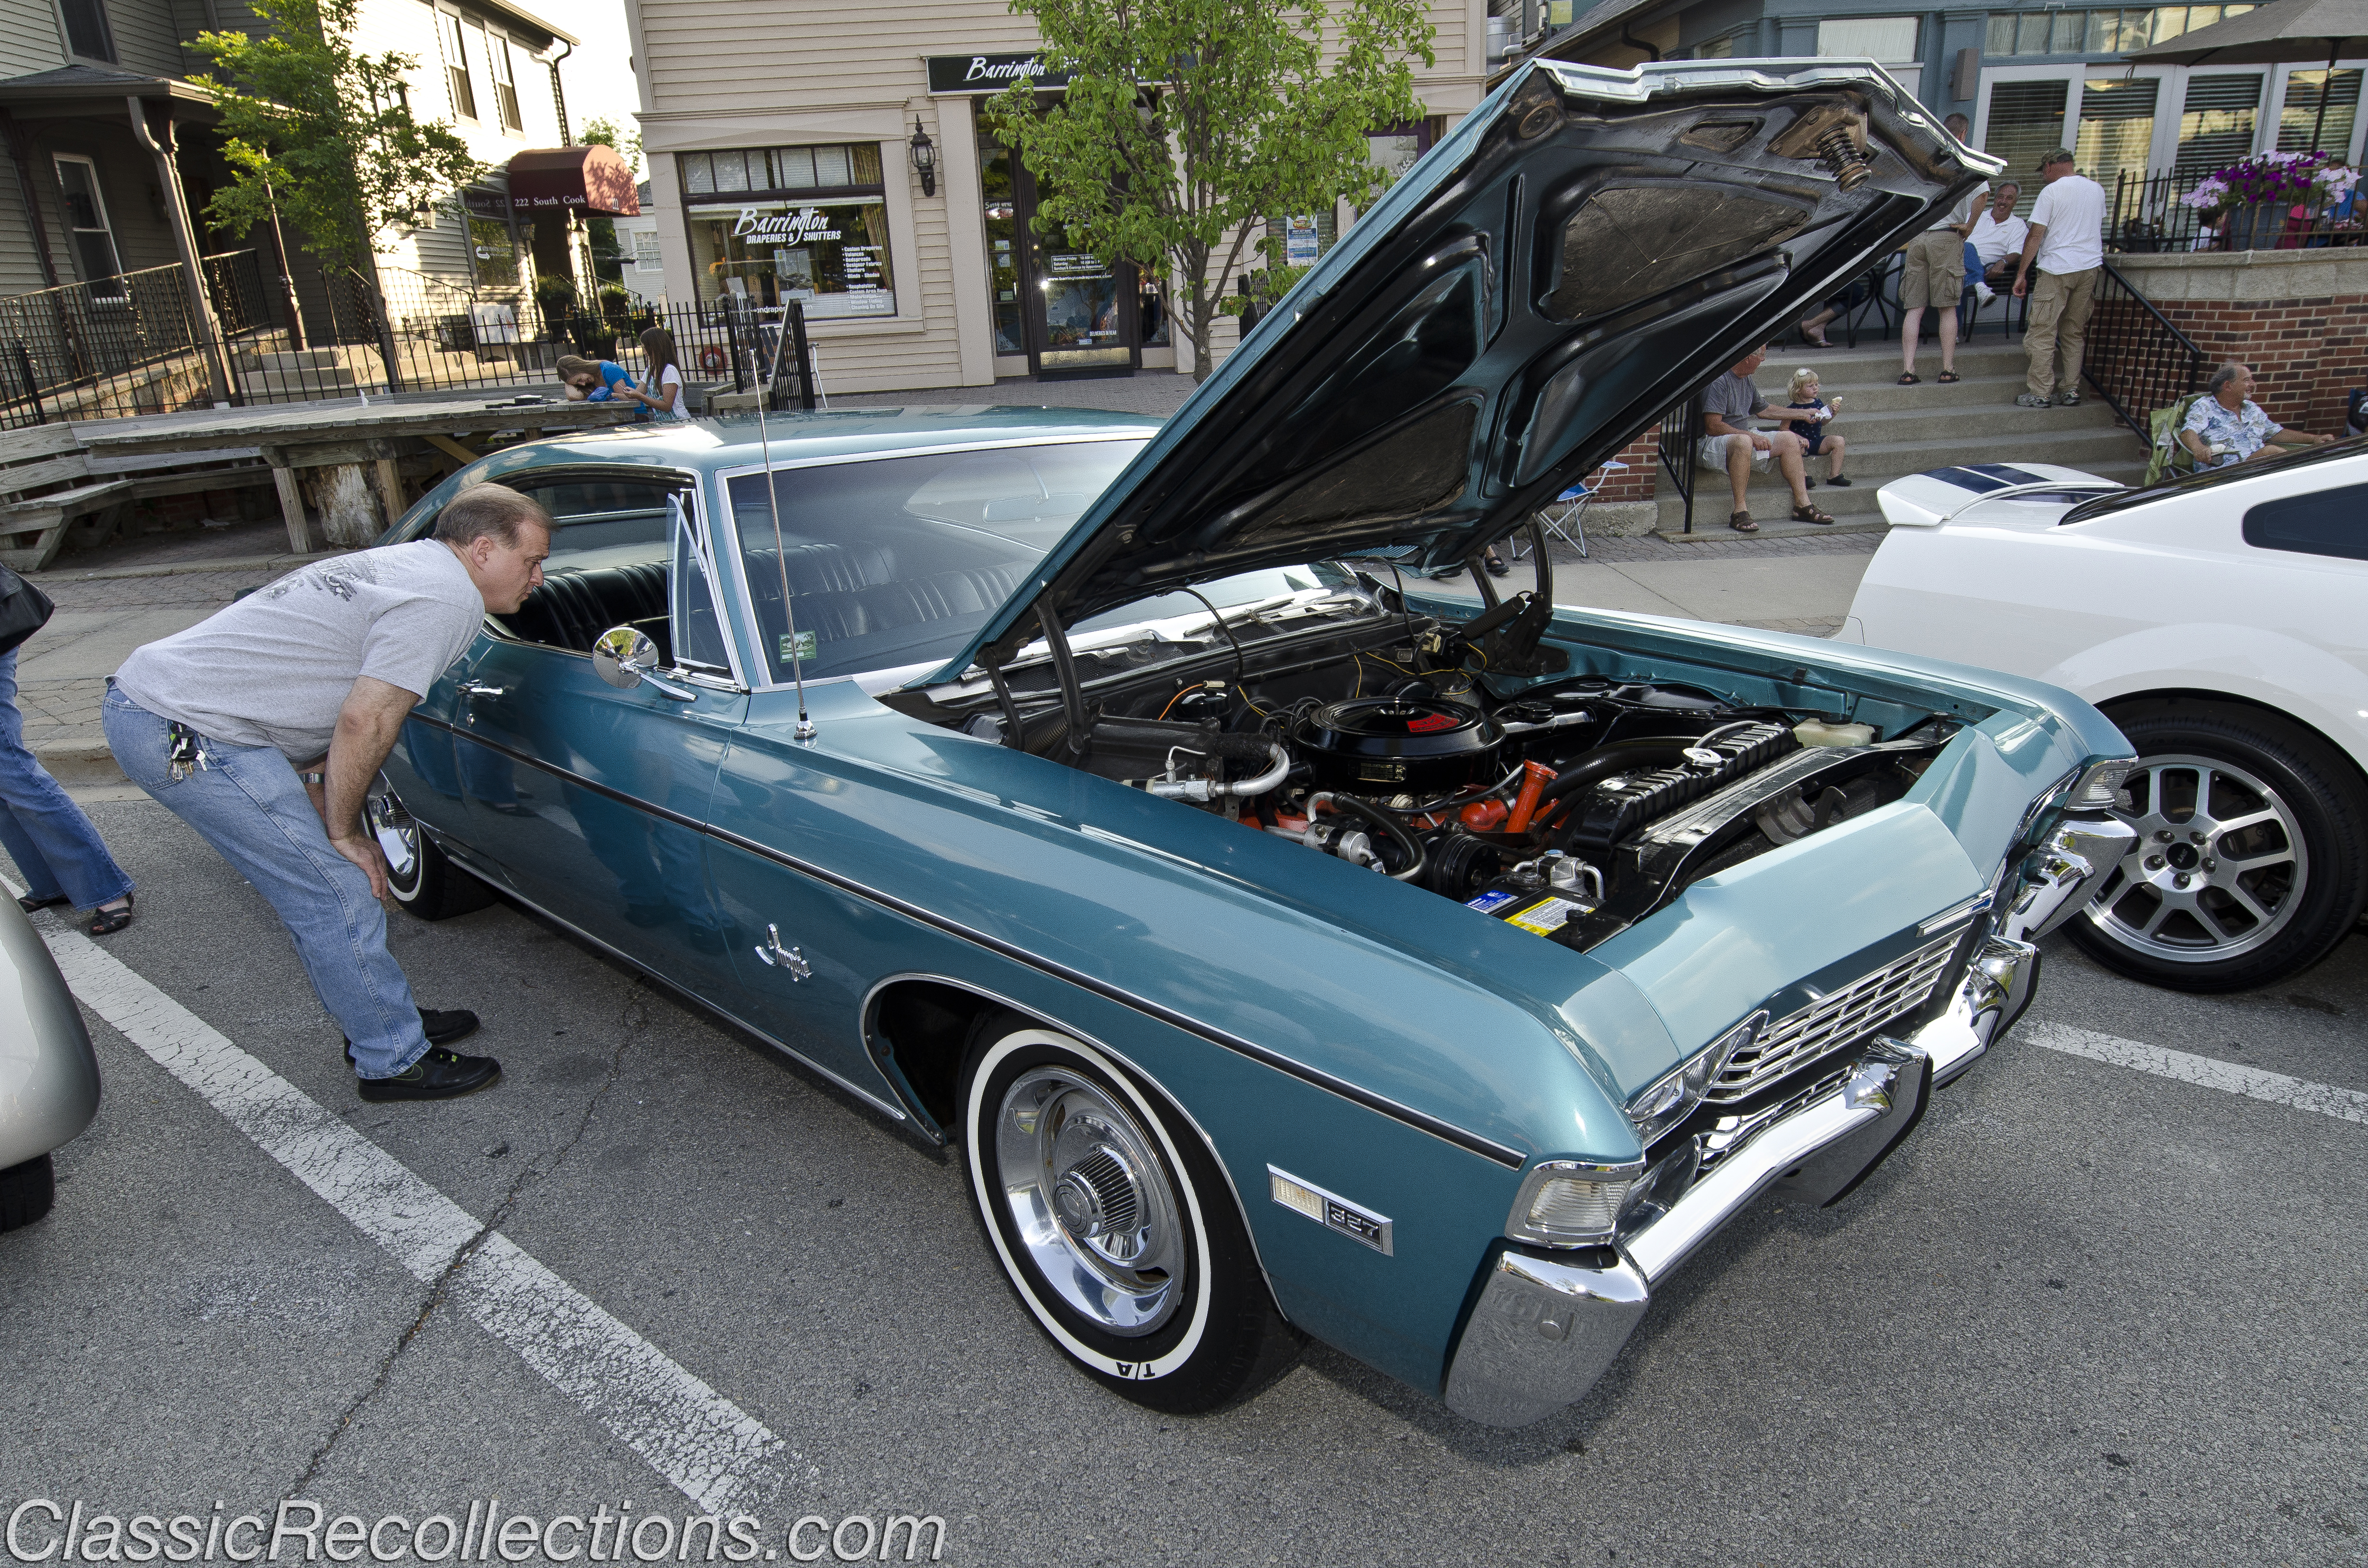 Cruise Night Downtown Barrington Illinois Classic Recollections